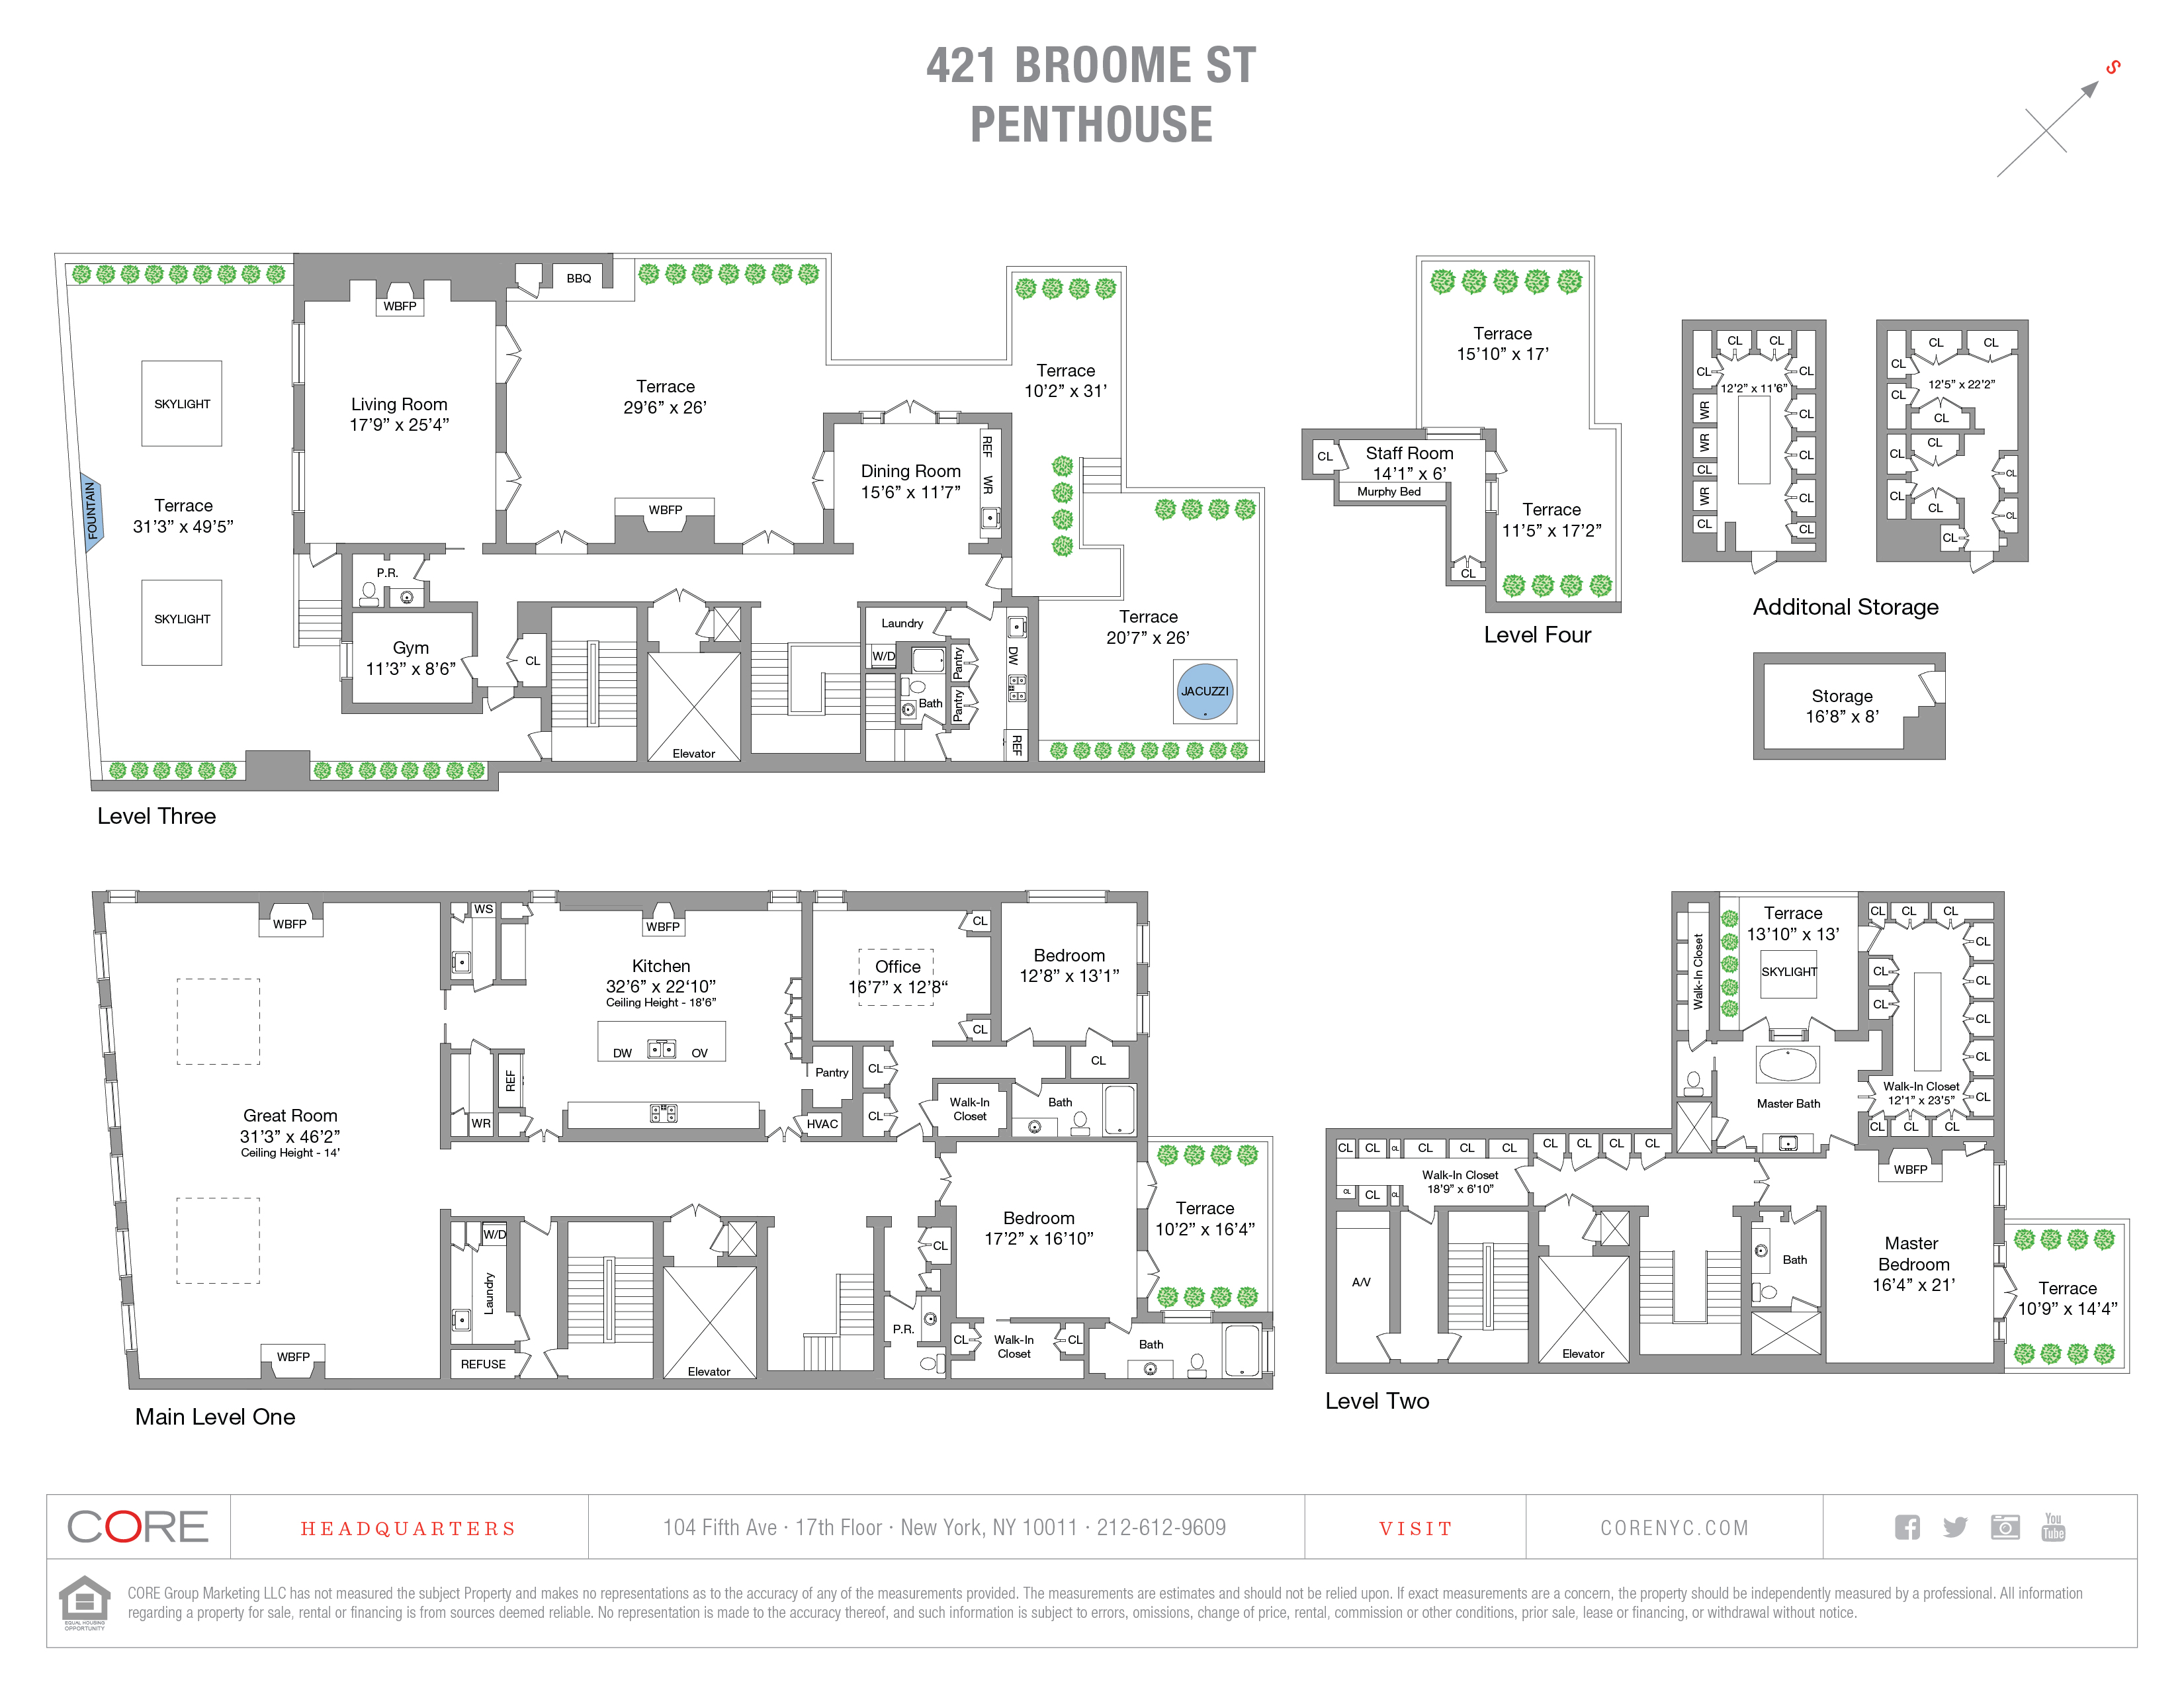 421 Broome St. PENTHOUSE, New York, NY 10013